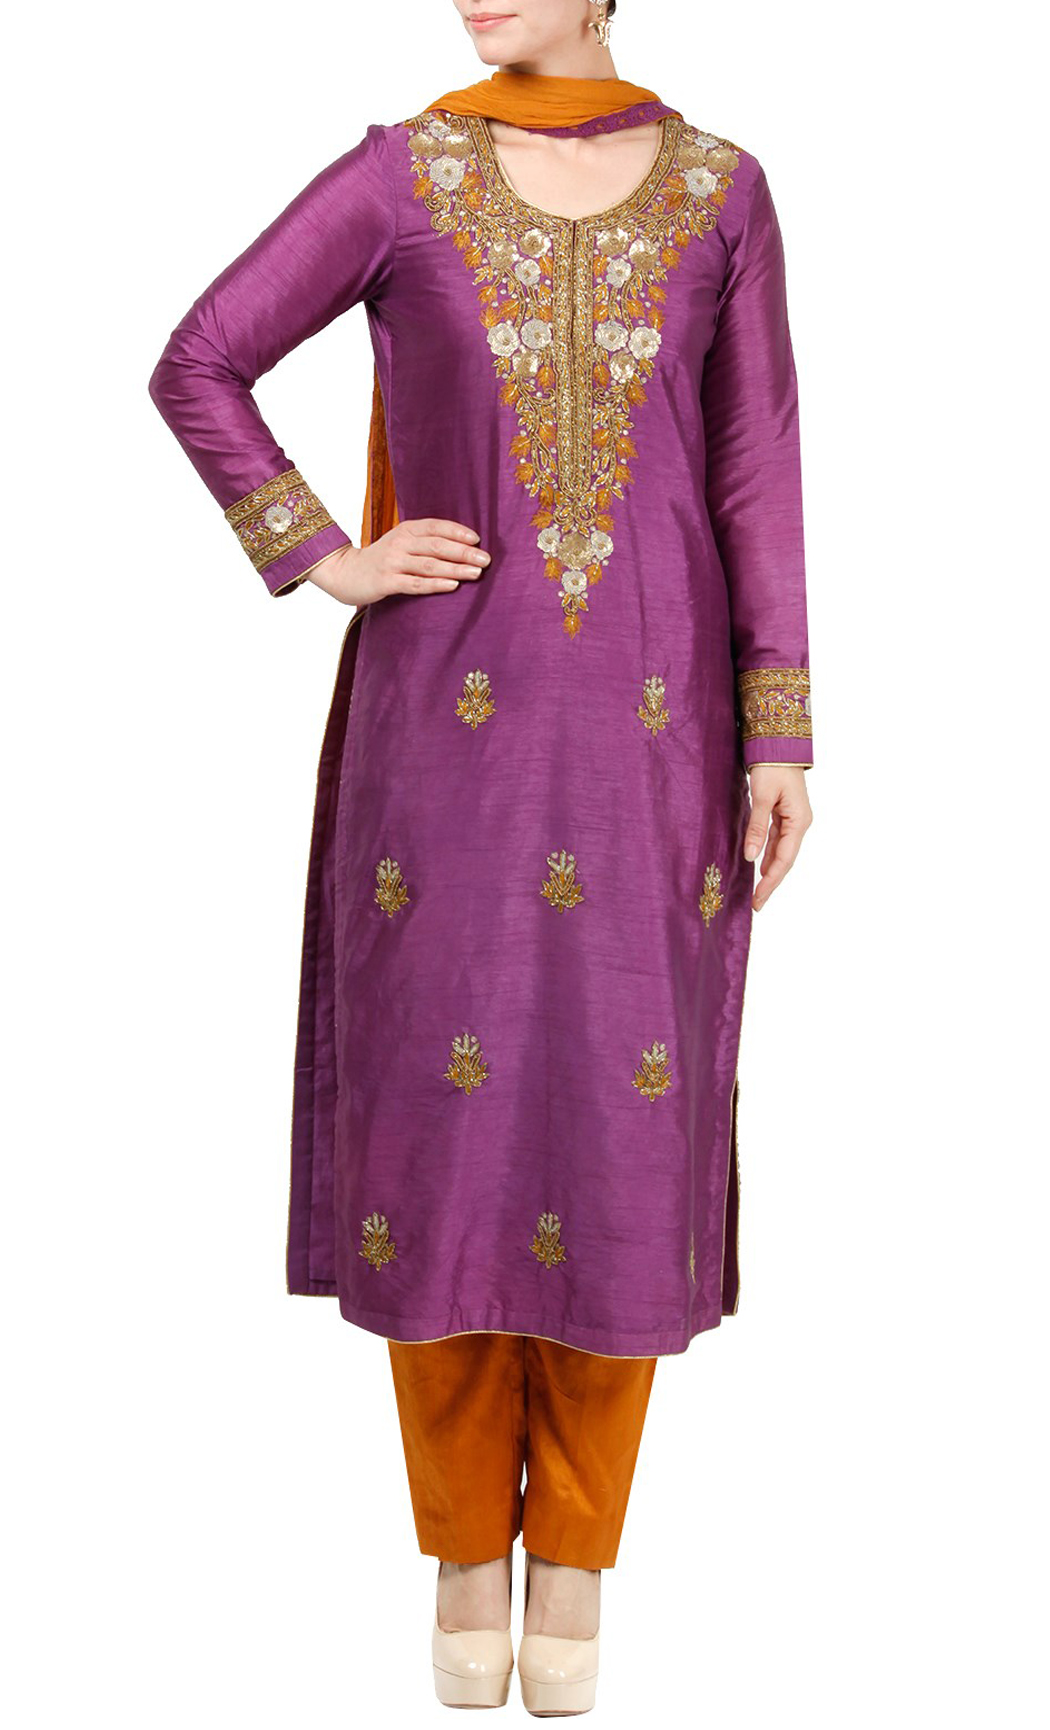 Purple and Orange Embroidered Salwar Kameez Kurta Set - Buy Online